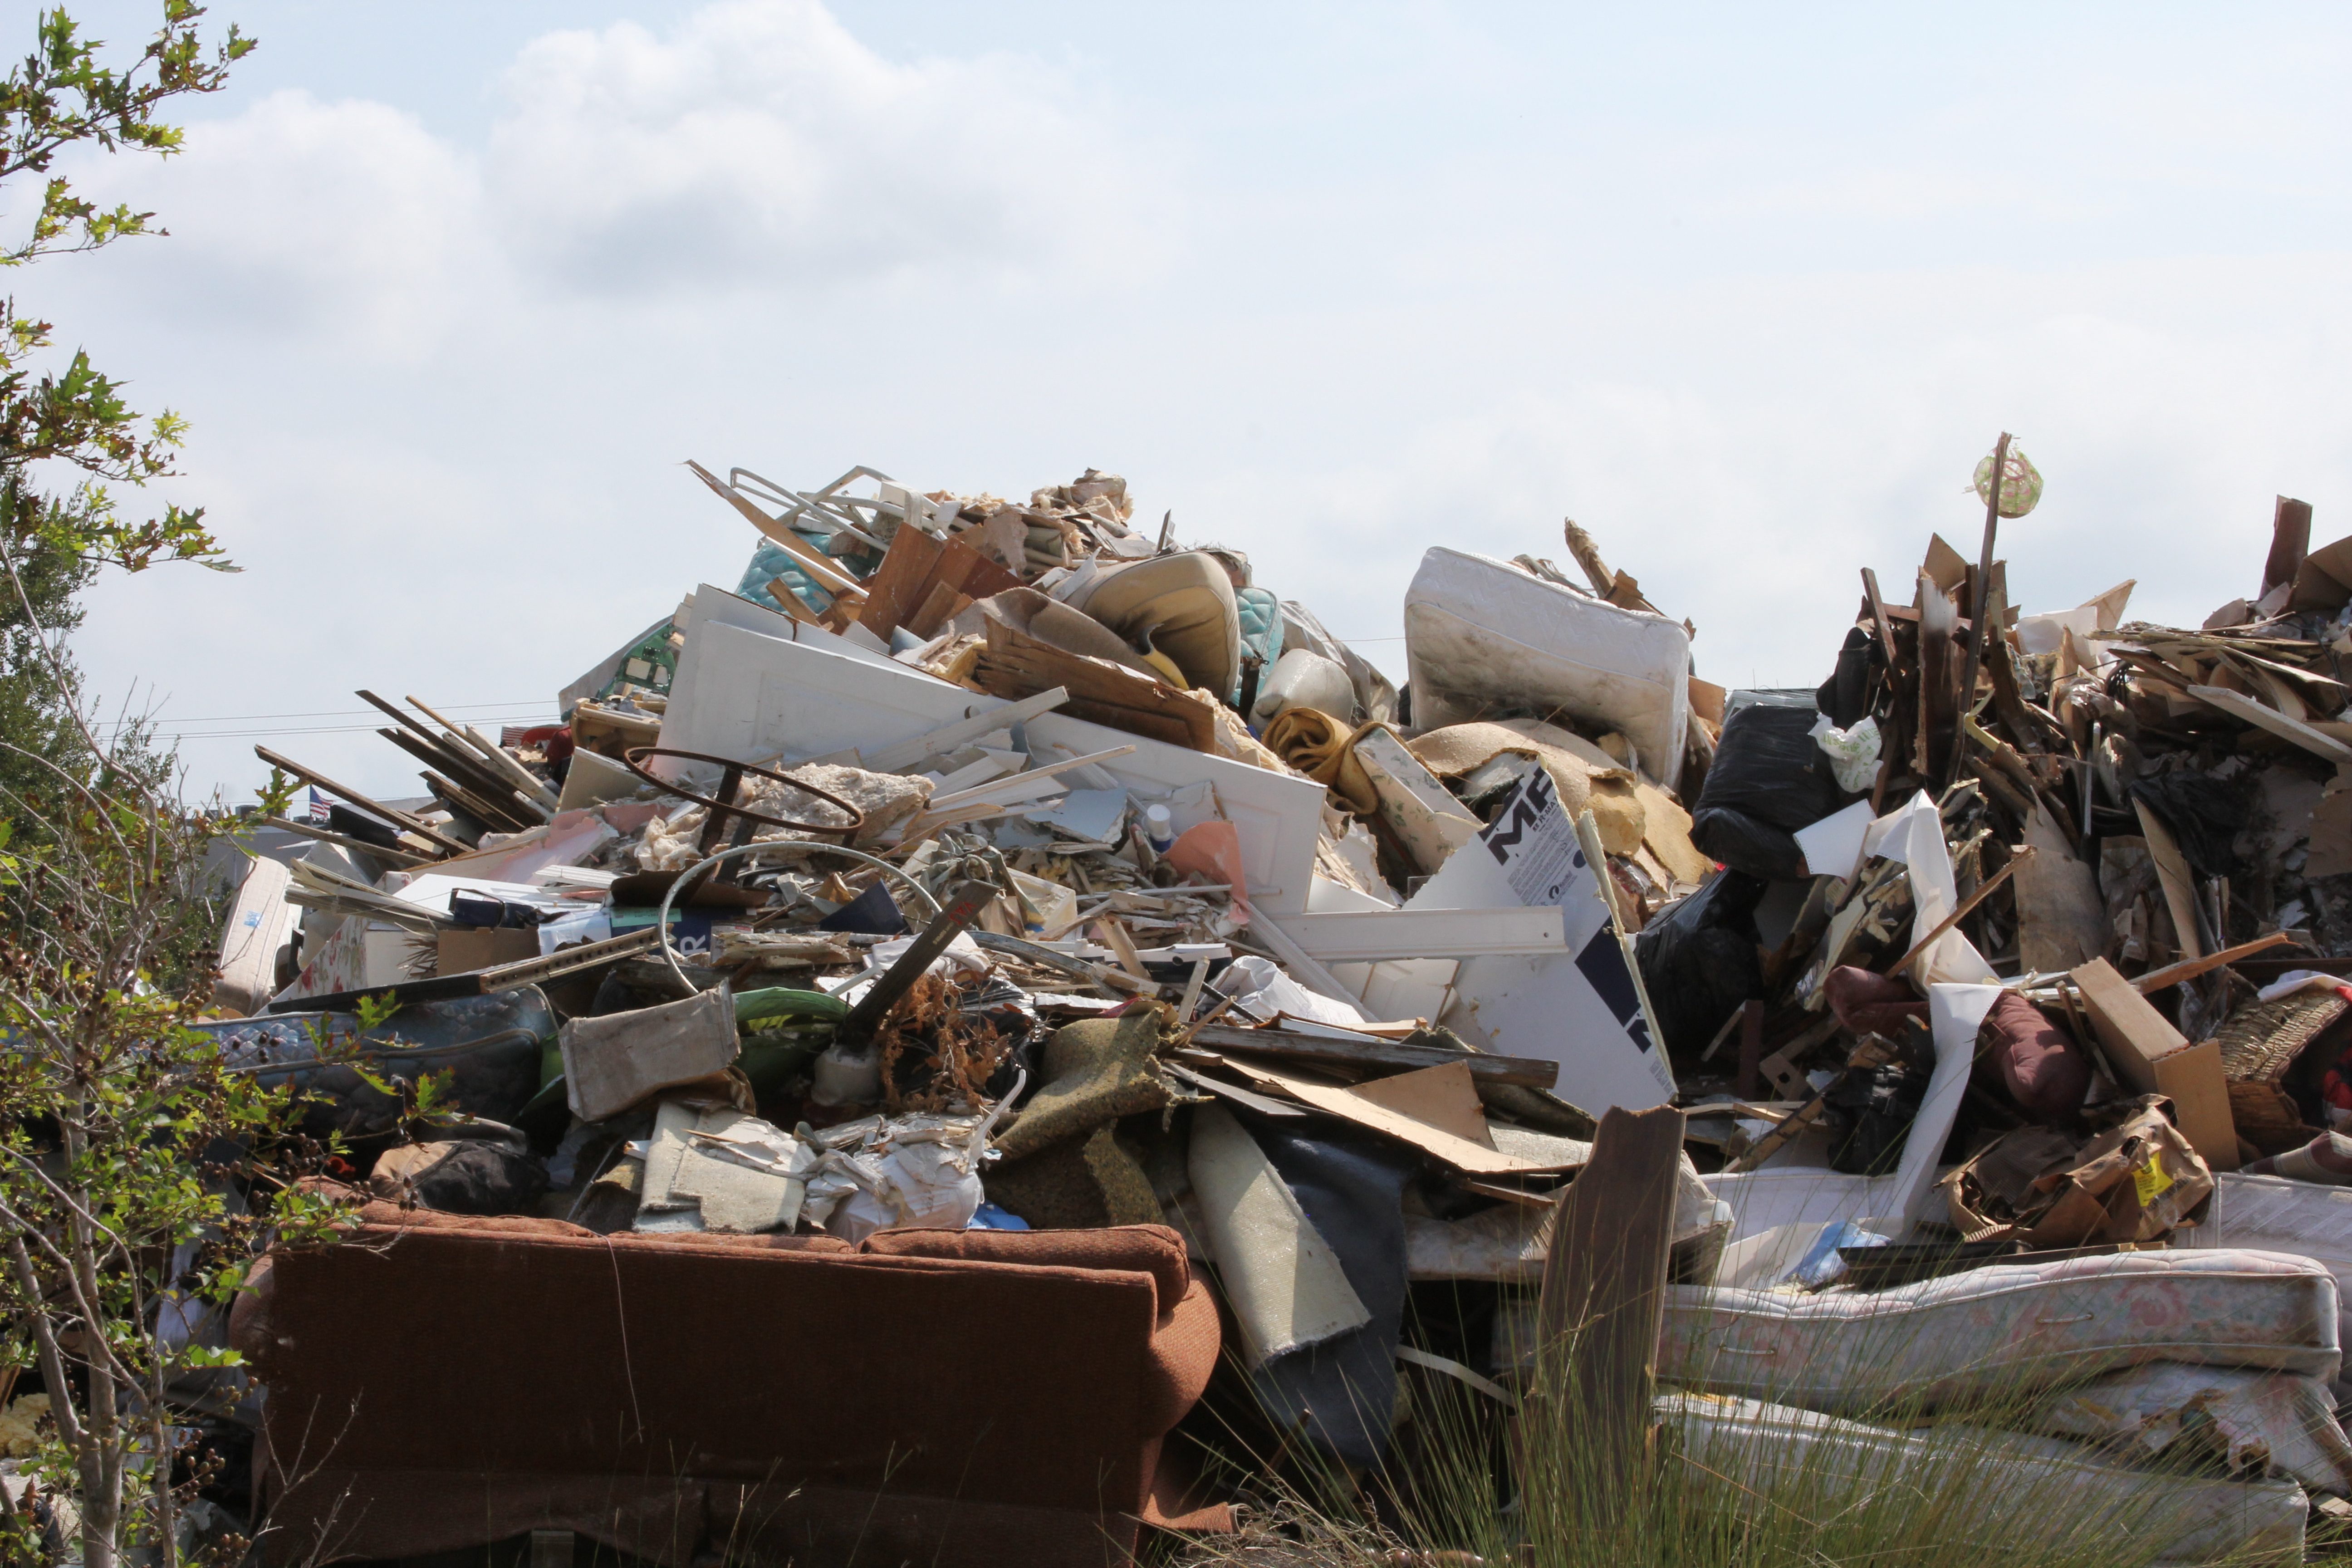 A large pile of household rubbish, including furniture, kitchen cabinets and sheetrock, awaits disposal after Hurricane Irma caused waist-high water to rise inside homes and buildings on Tybee Island, Georgia.